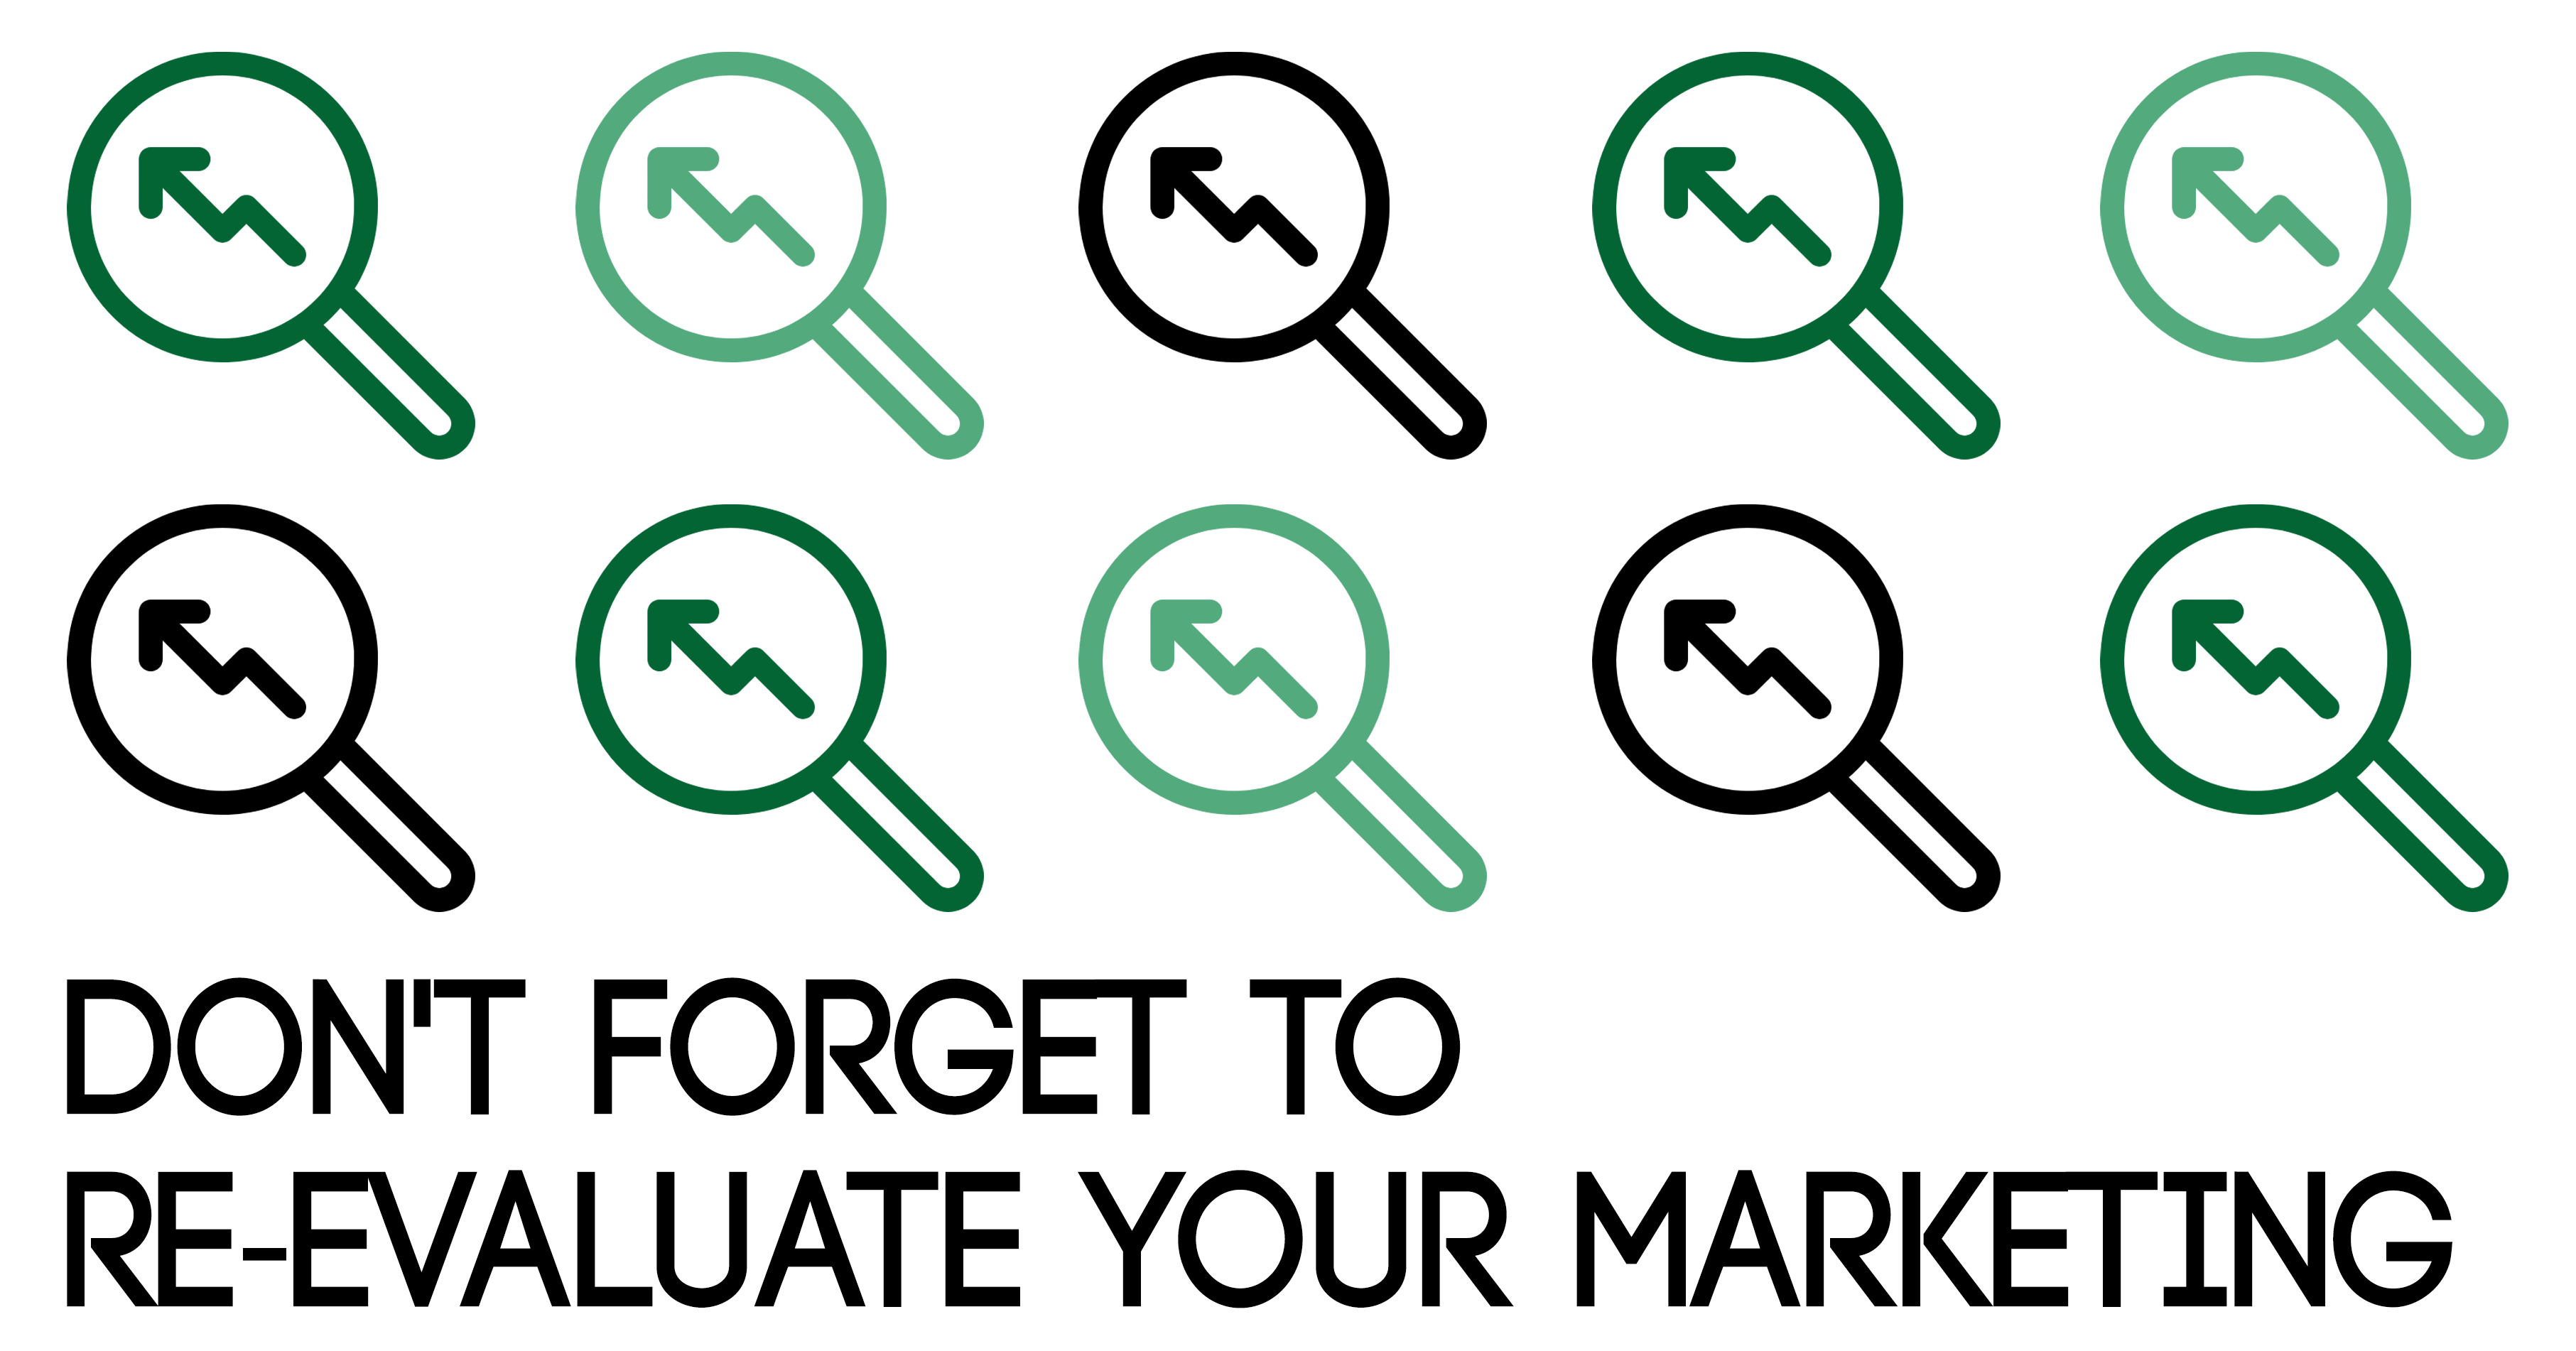 Don't Forget to Re-Evaluate Your Marketing